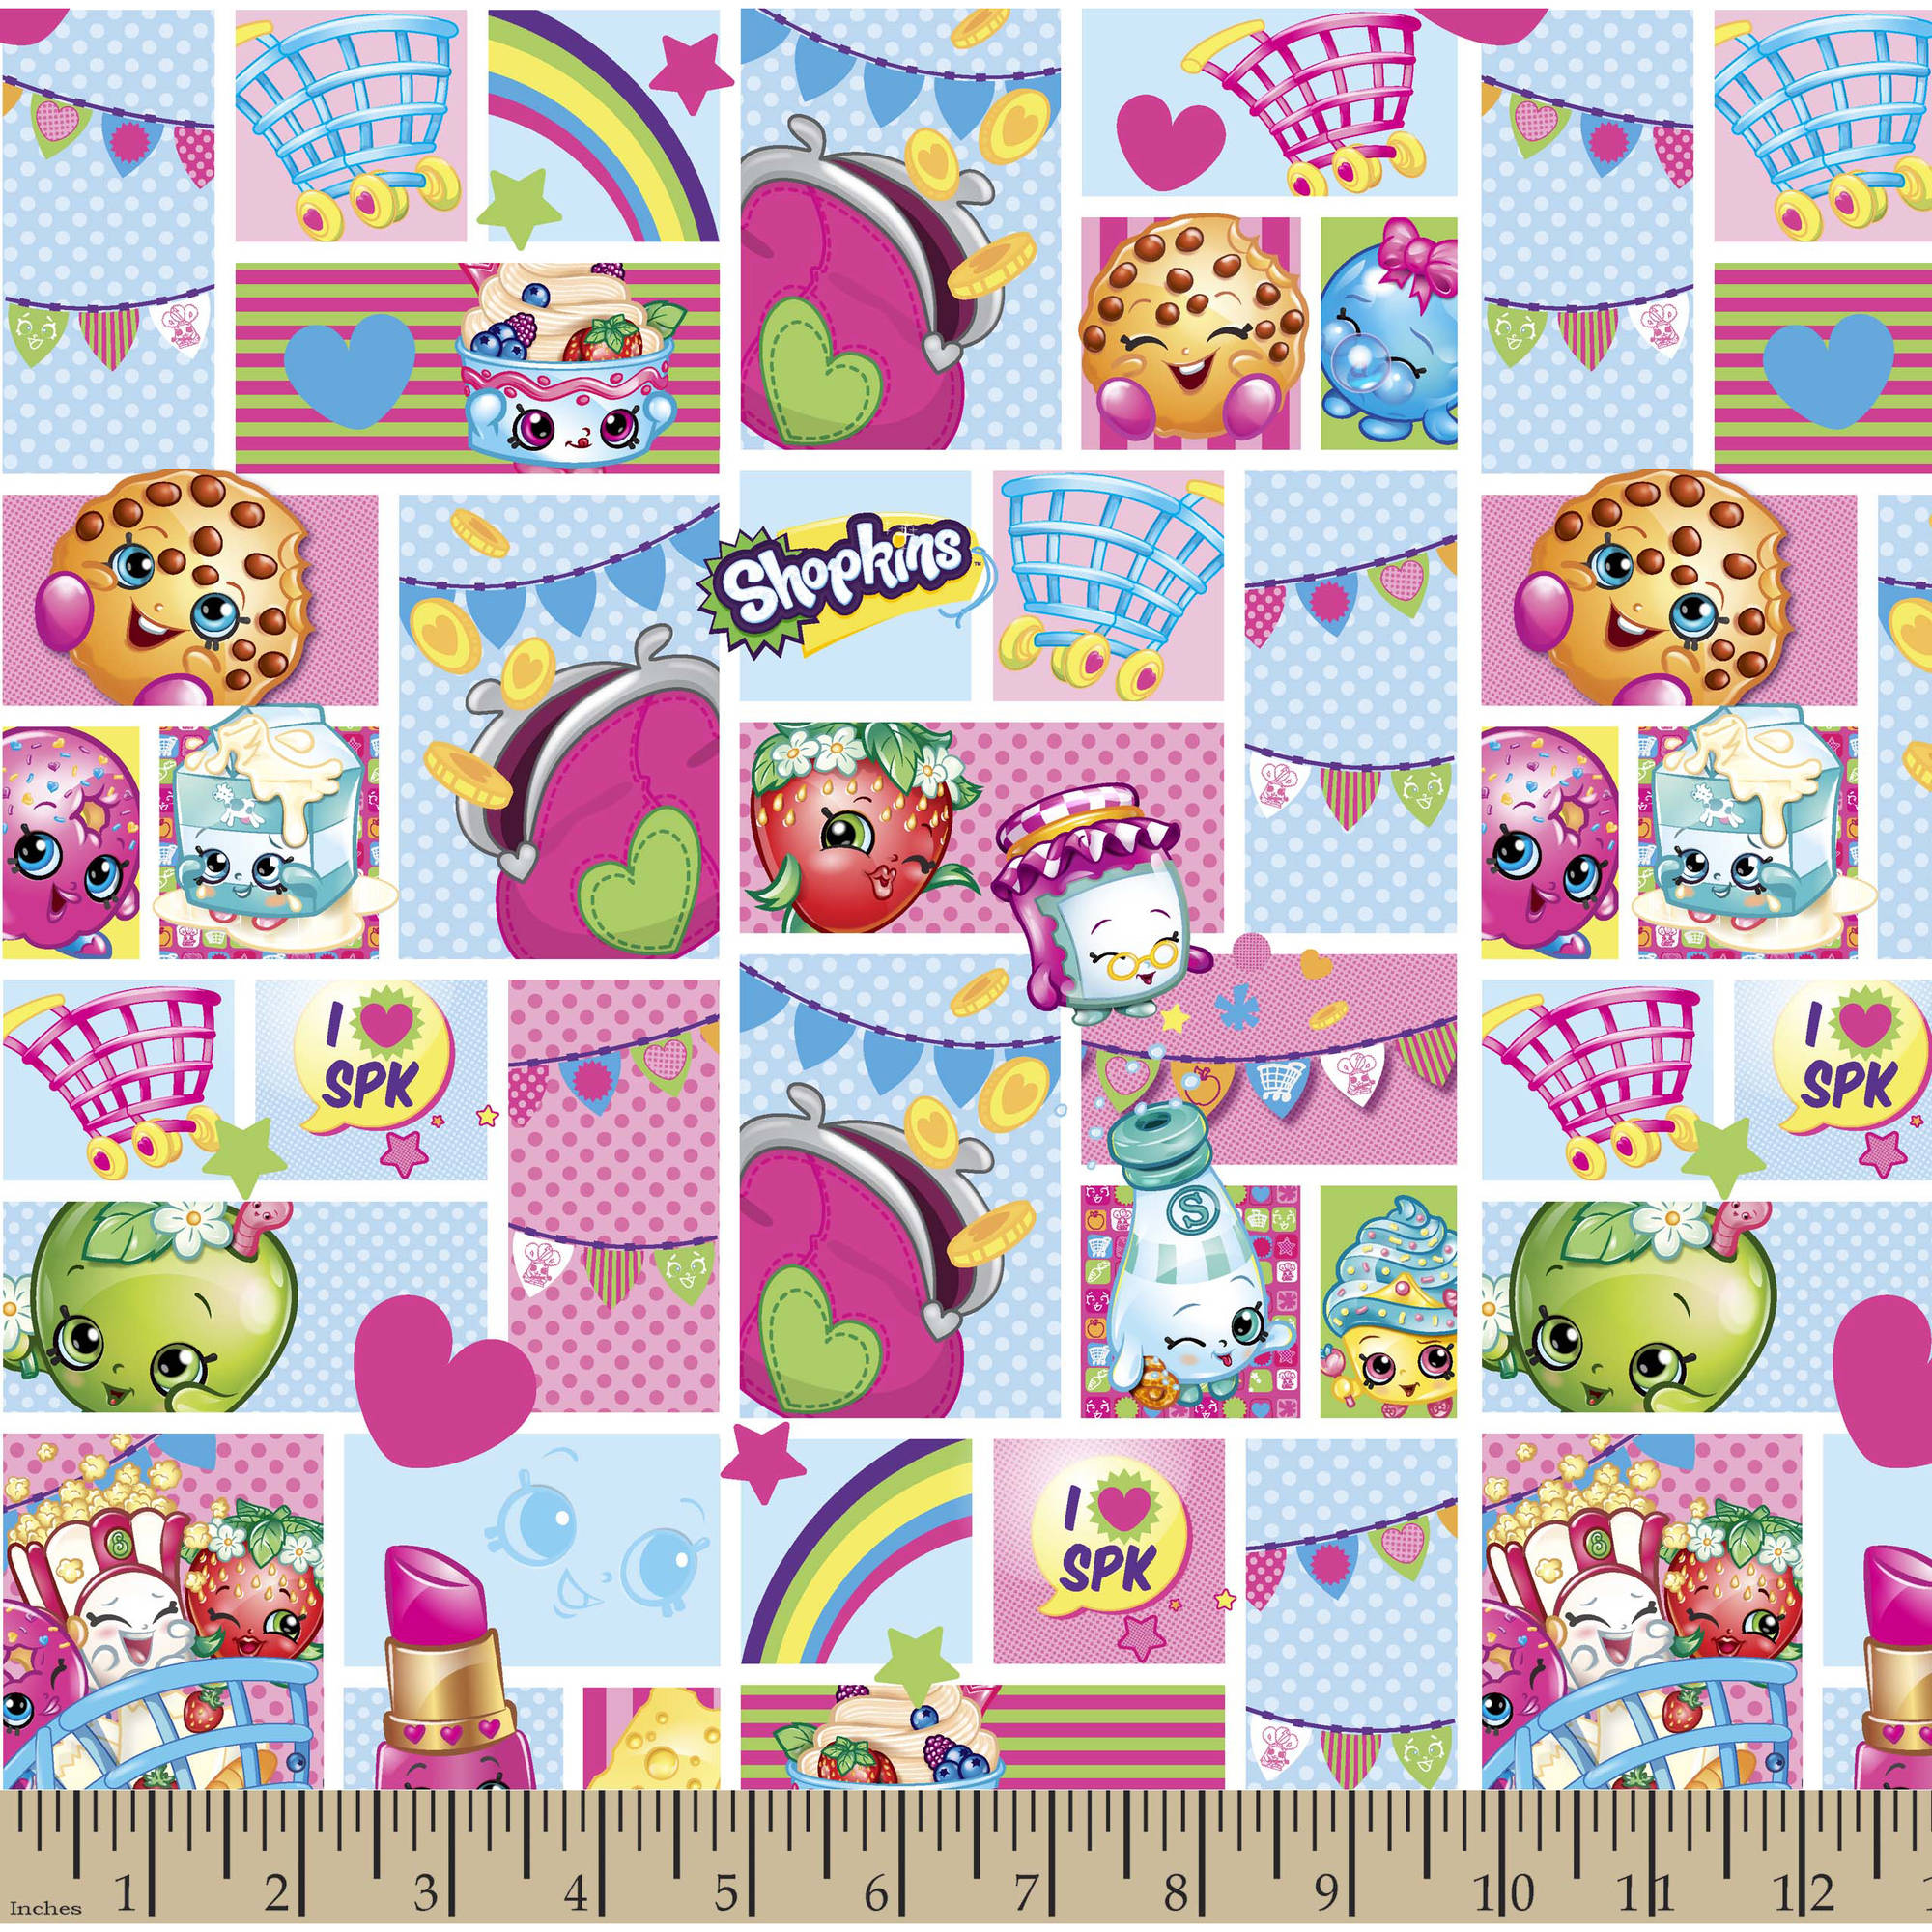 "Licensed Tablecloth Shopkins Patch Party Fabric by the Yard, Multi, 57""/58"" Width"